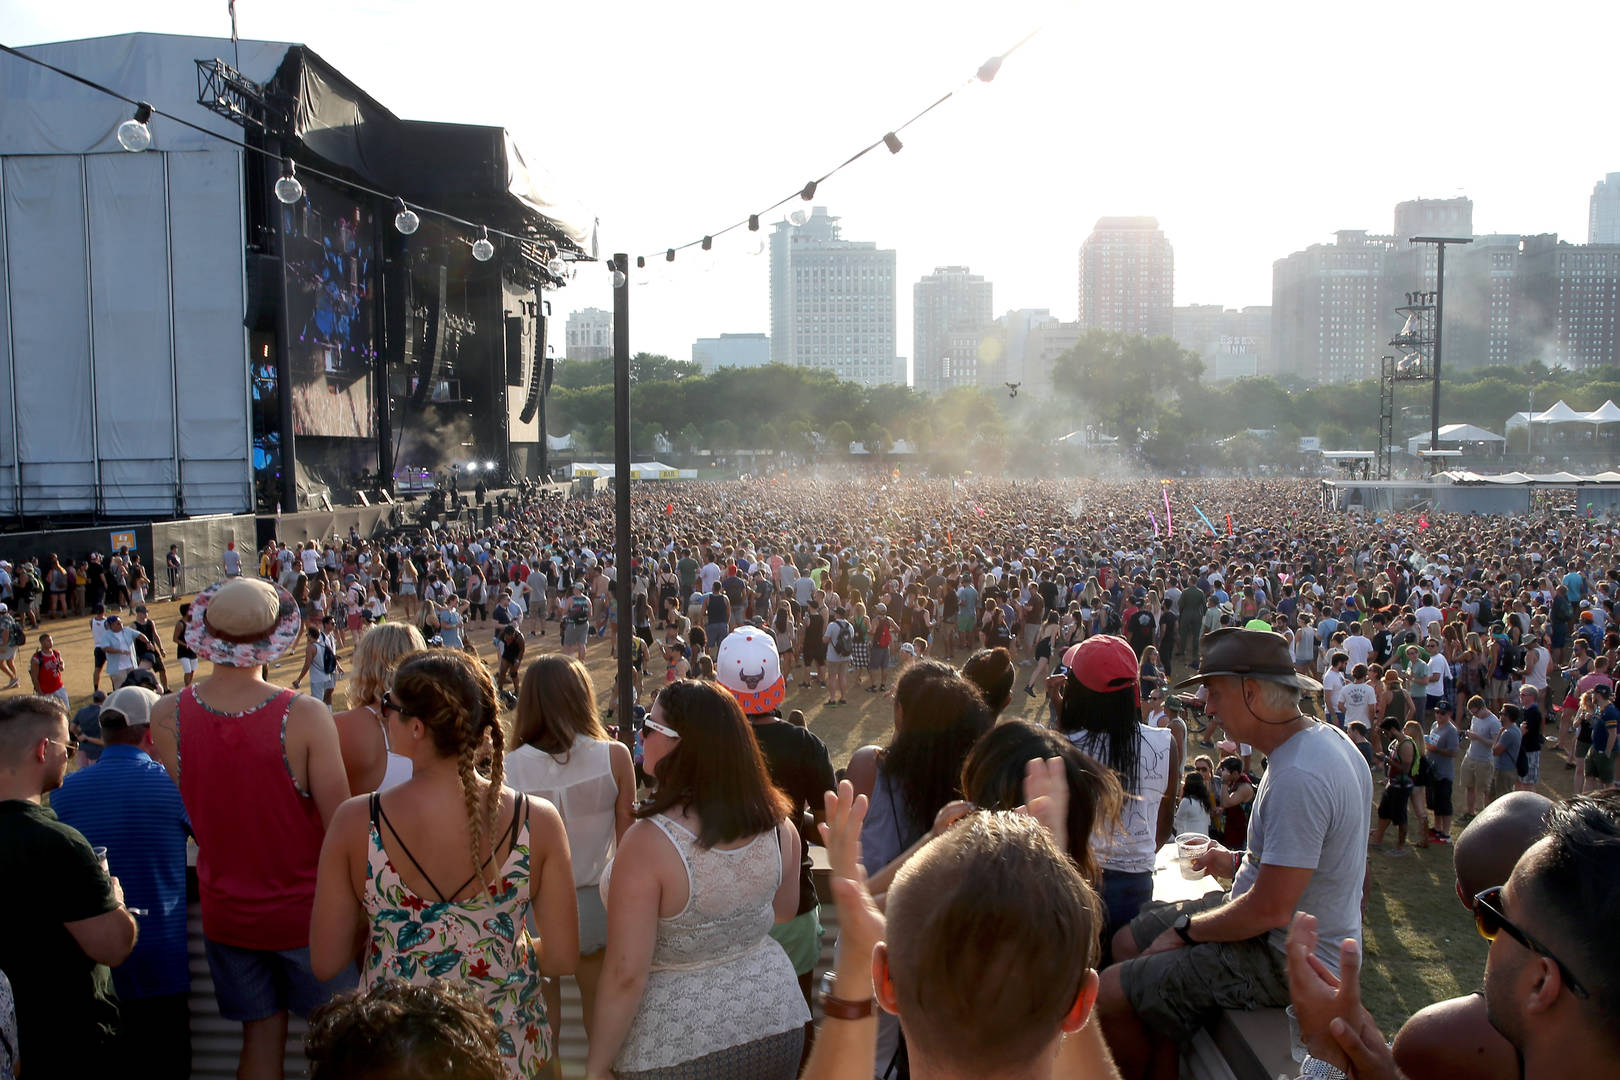 A view of the Samsung Stage from the Samsung Galaxy Lounge at Lollapalooza 2016 - Day 4 at Grant Park on July 31, 2016 in Chicago, Illinois.